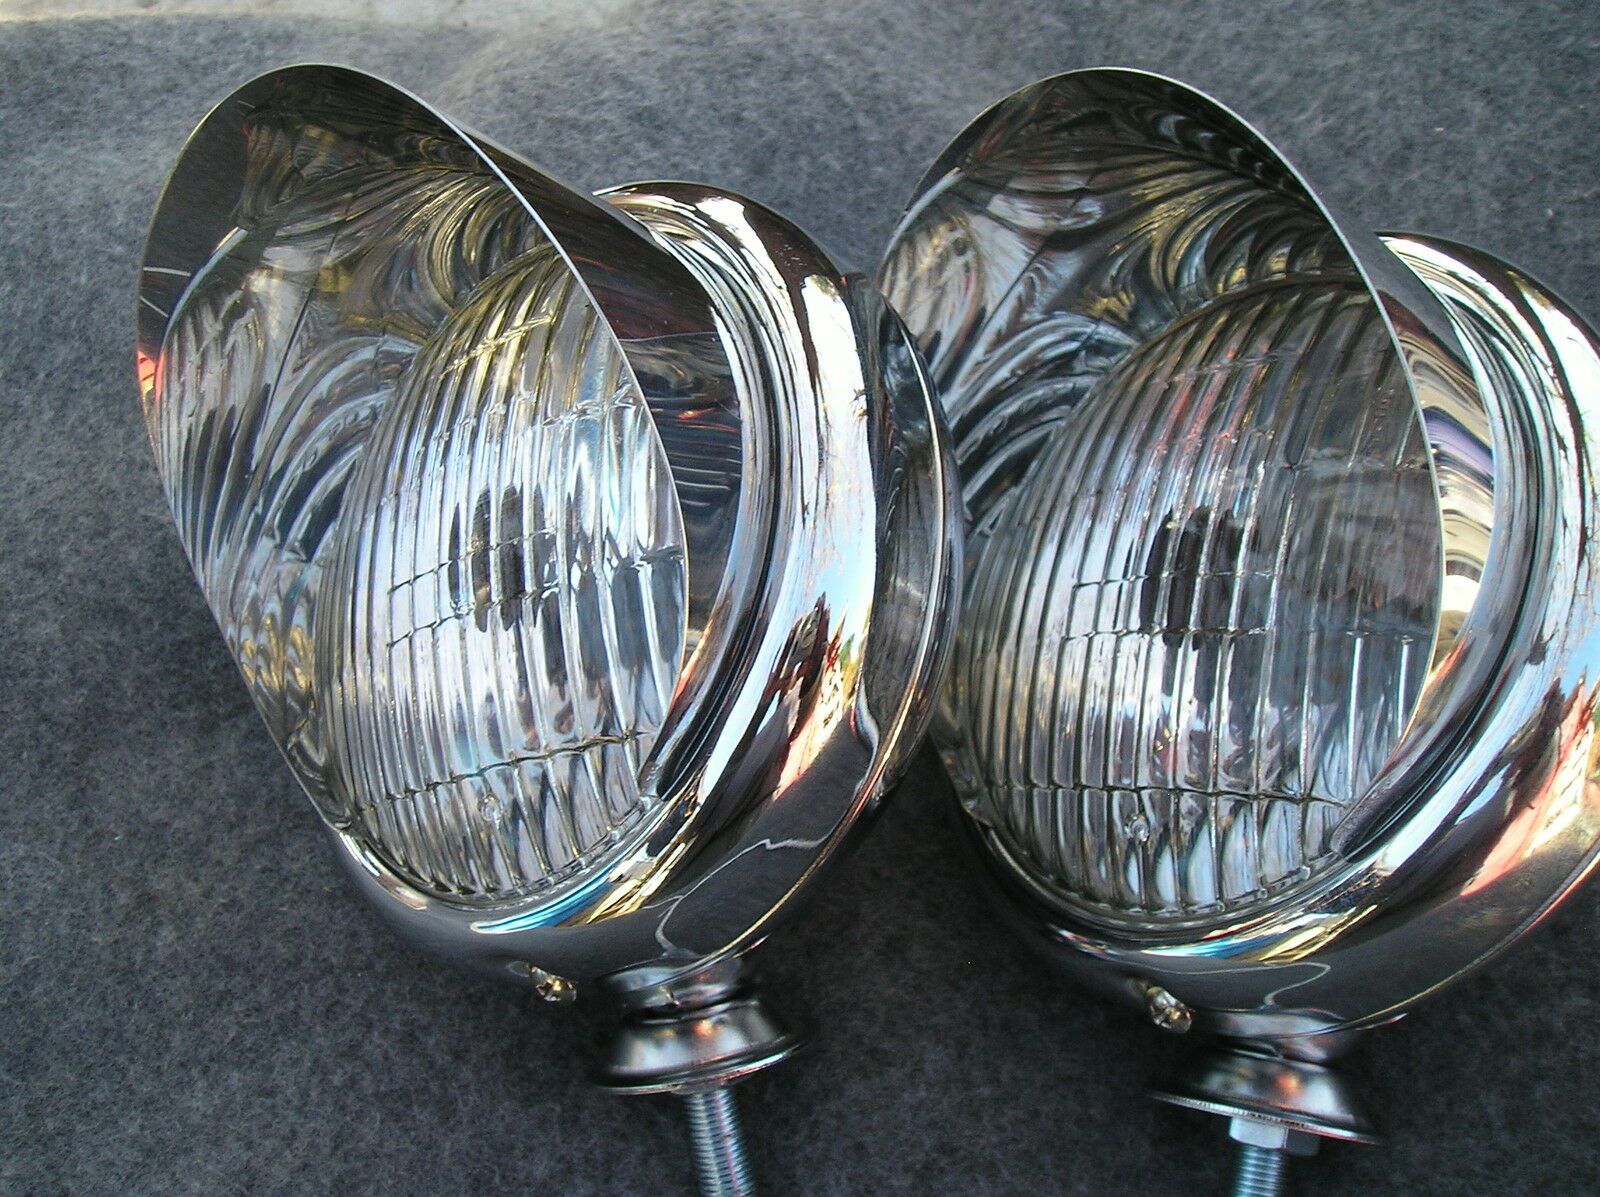 Vintage Car Truck Parts Lighting Lamps Fog Driving Lights On Visors And Brackets New Or Light Wiring Harnesses Picture Pair Chrome Small 12 Volt Style Clear Color With